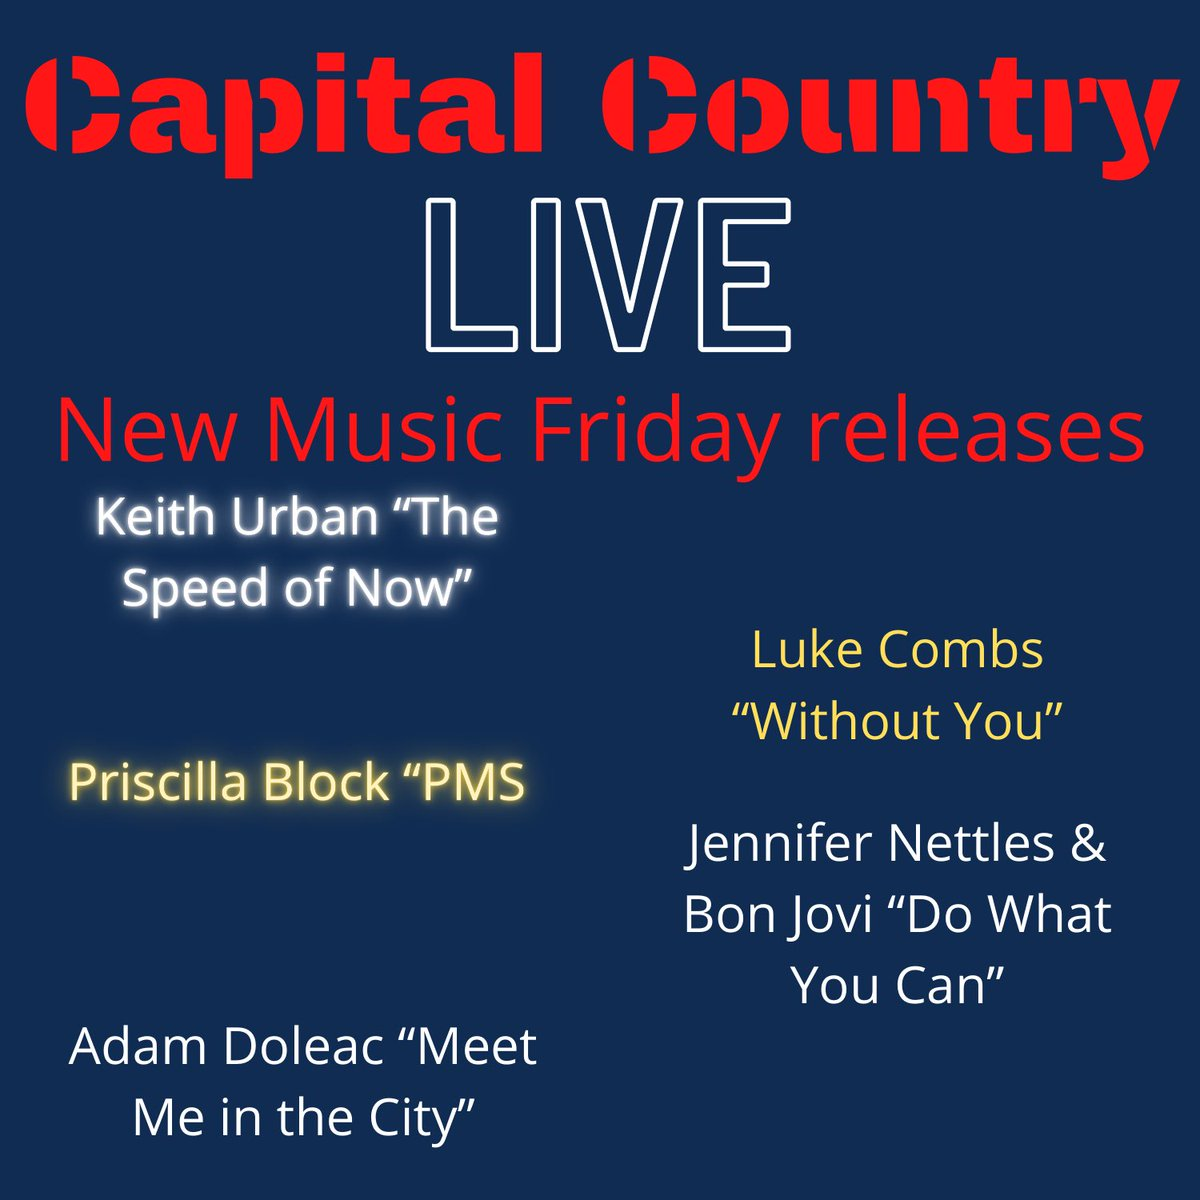 Better. Late. Than. Never. OK. #NewMusicFriday featuring #Newalbum from @KeithUrban #THESPEEDOFNOW  Also @lukecombs #withoutyou @priscillablock #pms @JenniferNettles @BonJovi #DoWhatYouCan @AdamDoleacMusic  #meetmeinthecity  #NewRelease #countrymusic #capitalcountrylive https://t.co/tx0ofkfG5C